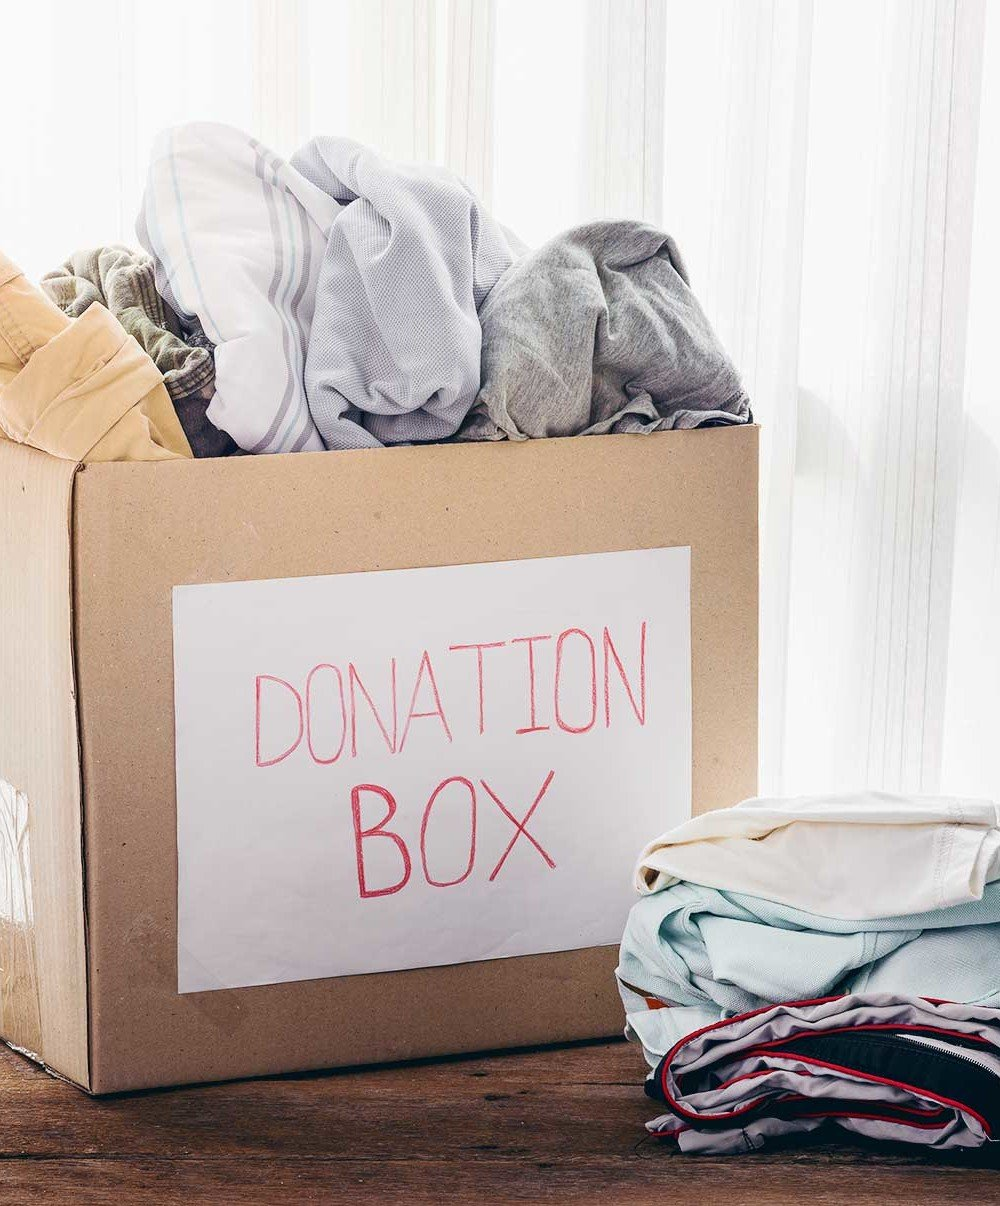 donation box, clothes